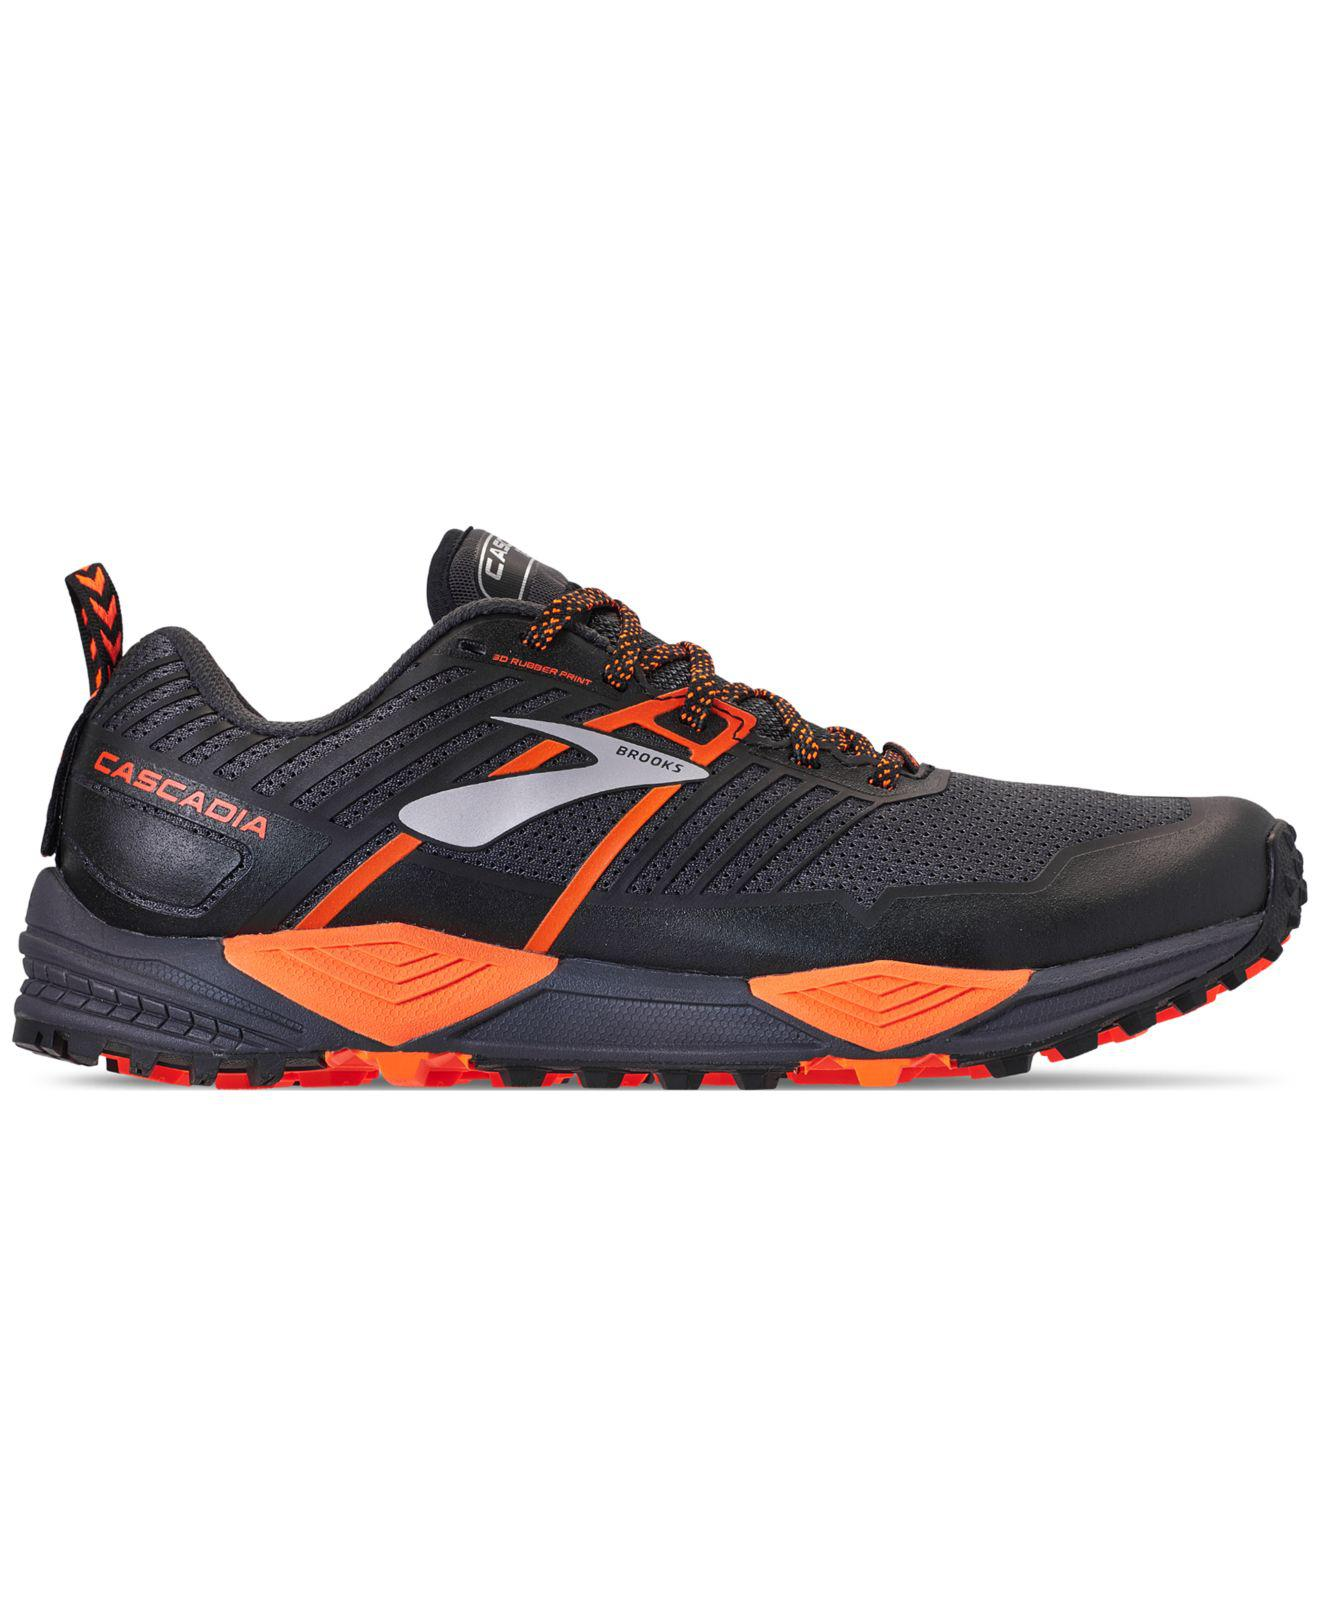 970689f7242 Lyst - Brooks Cascadia 13 Trail Running Sneakers From Finish Line in Gray  for Men